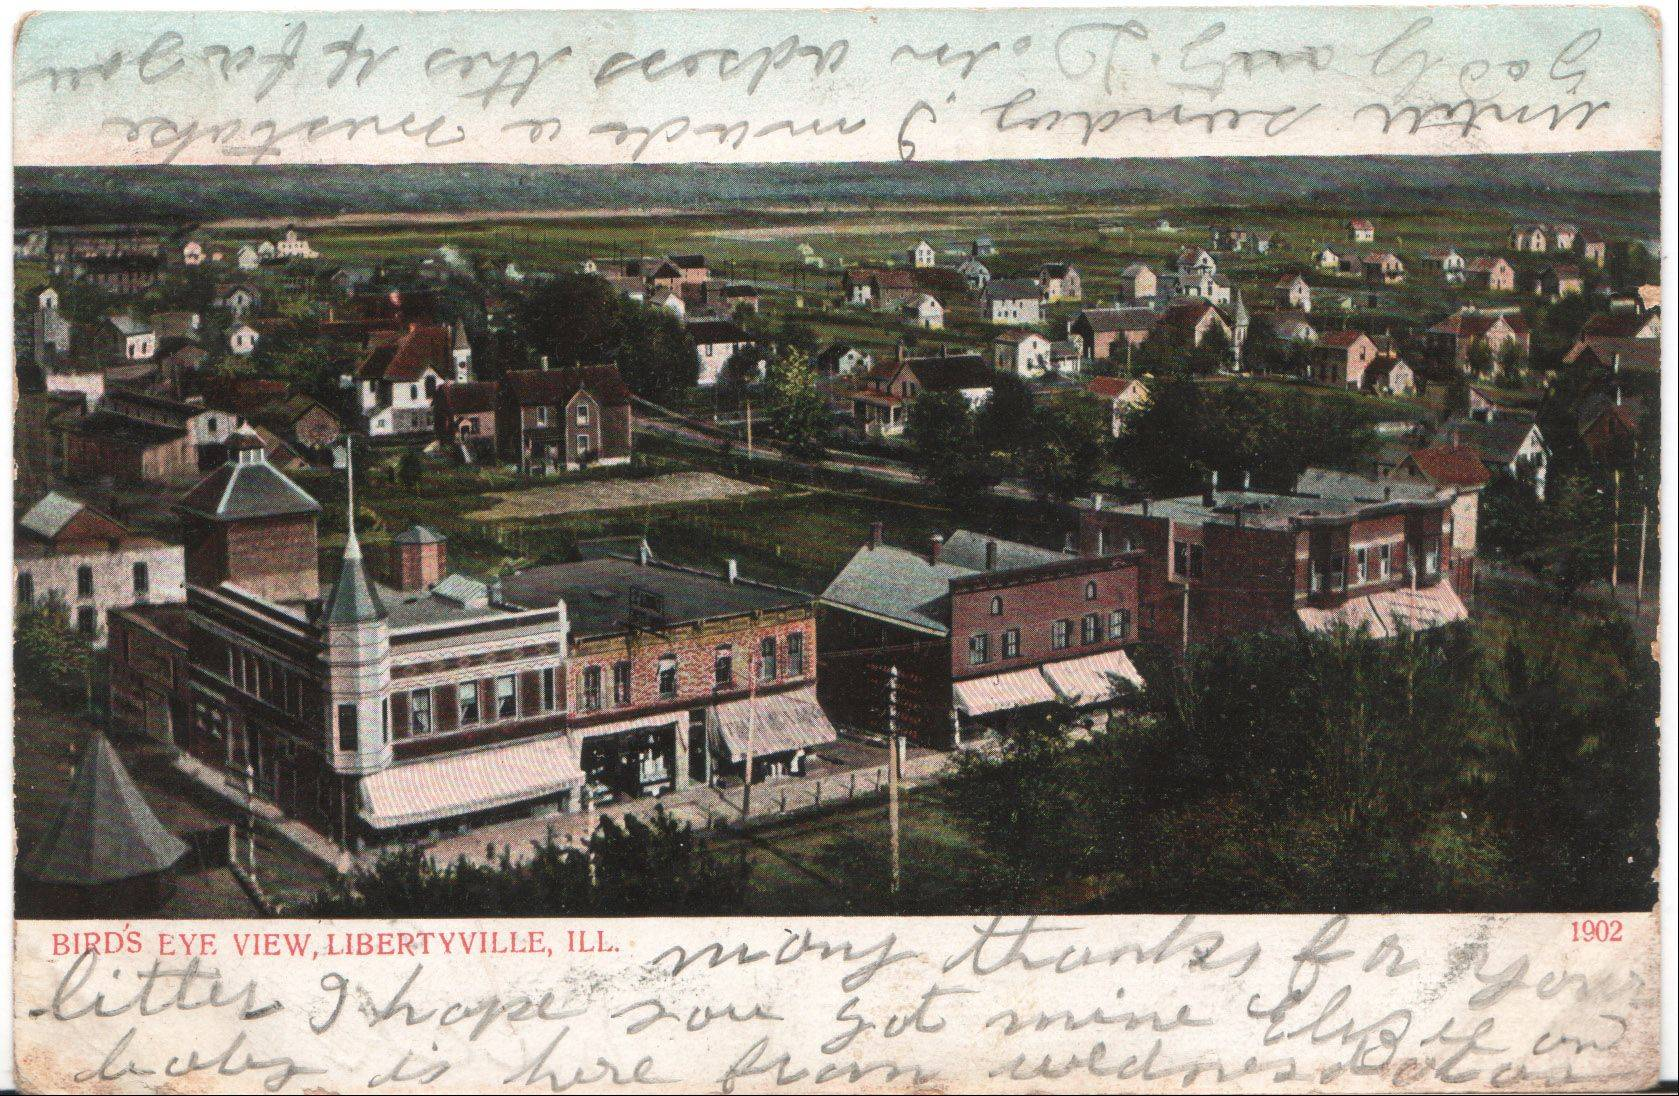 This postcard from a collection to be displayed this week at St. Lawrence Episcopal Church in Libertyville shows the village as it was in 1902